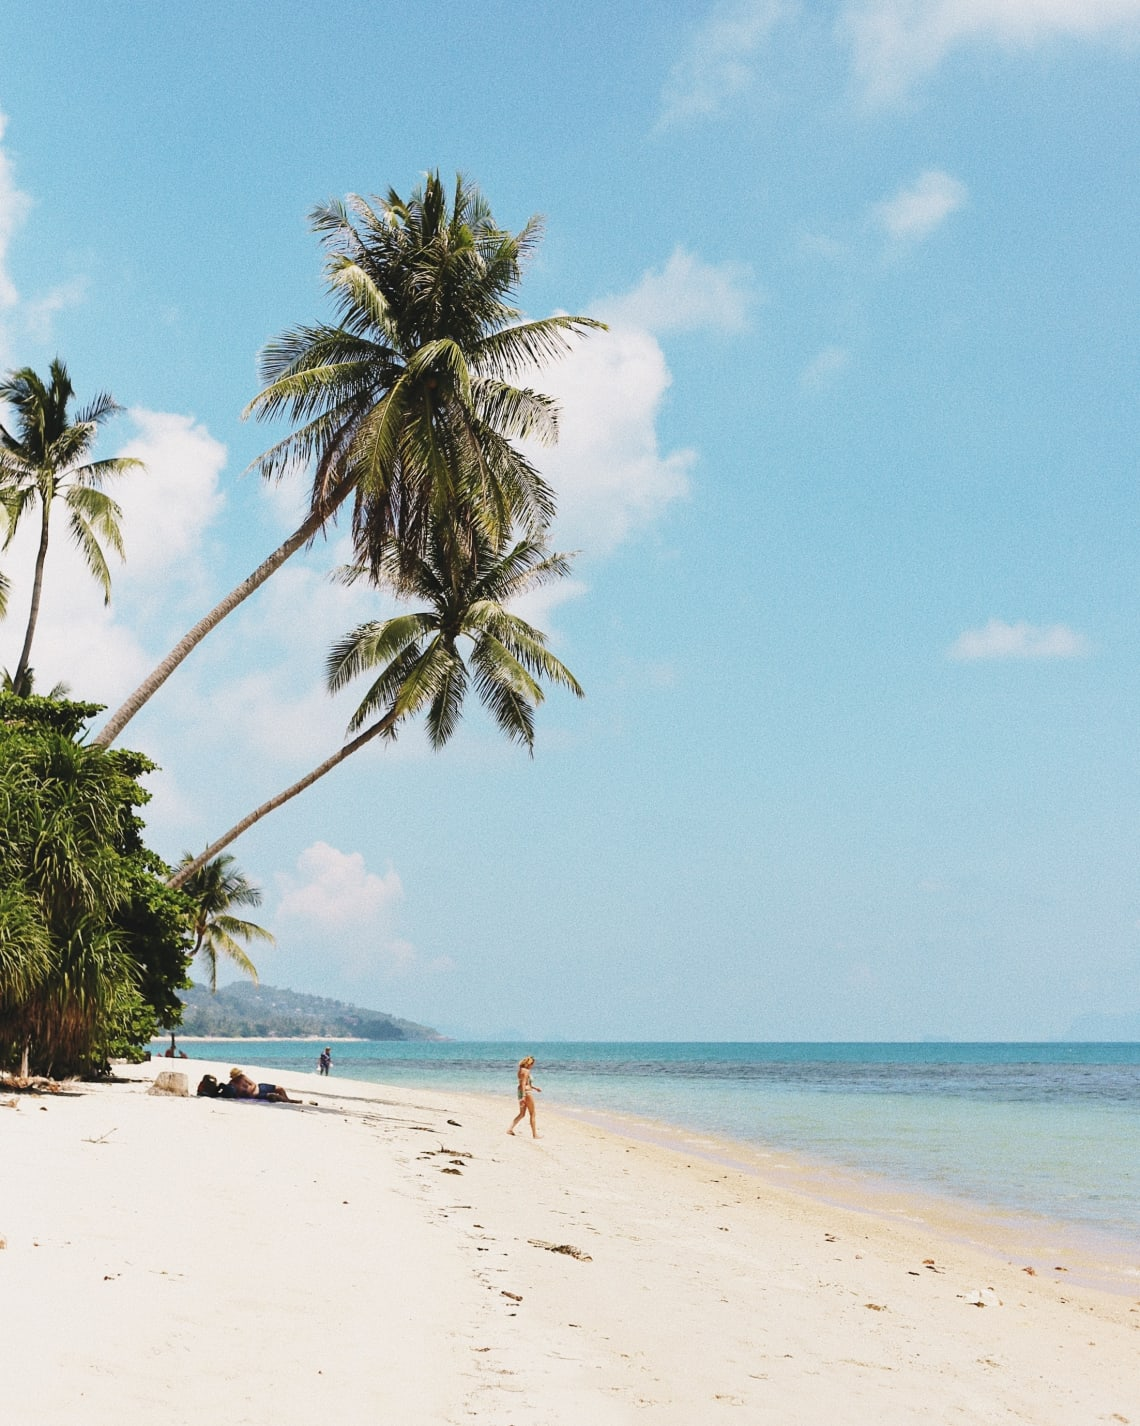 Best places to visit in Thailand: Koh Samui